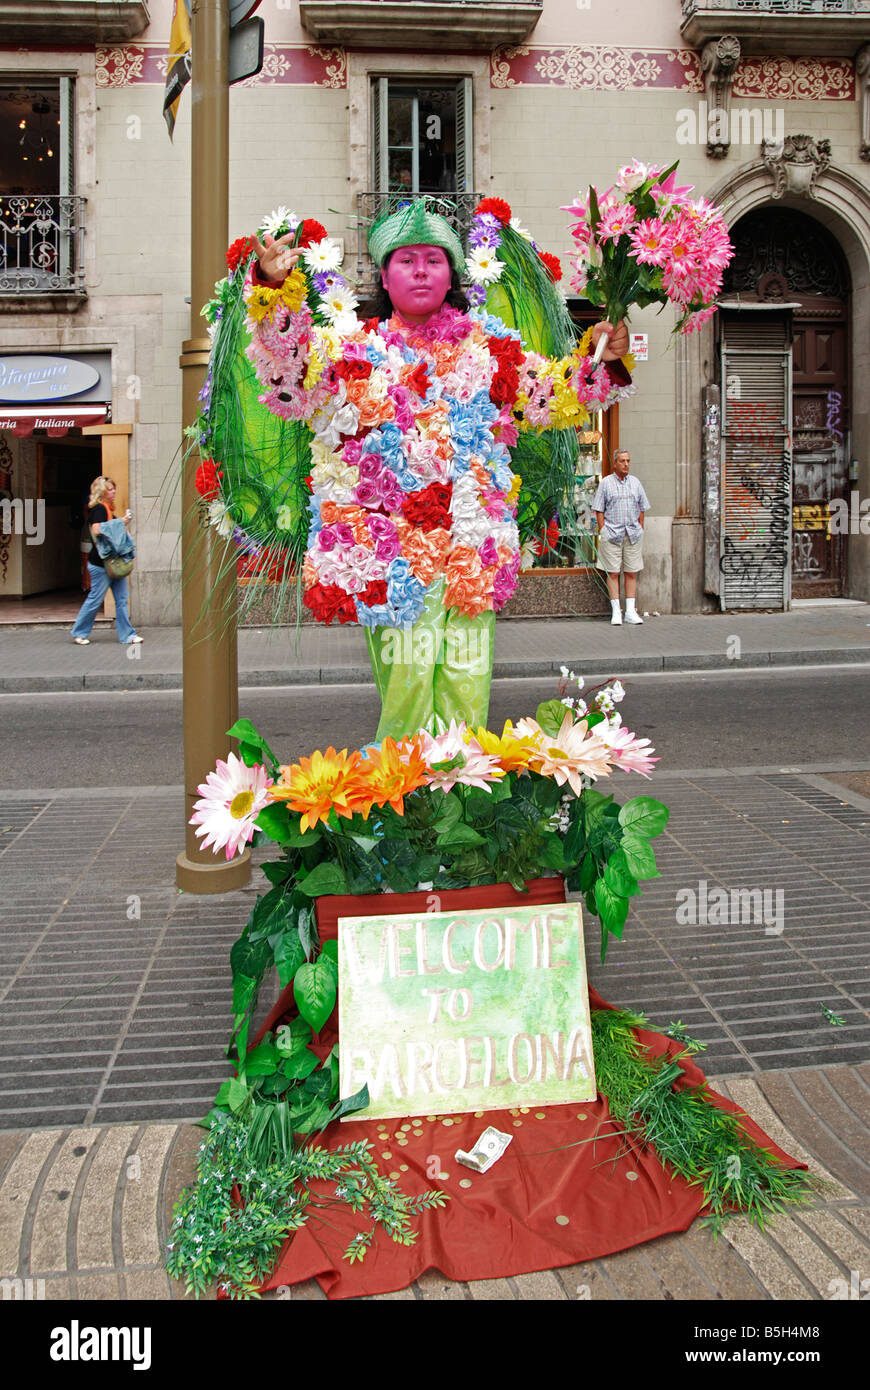 a human statue street performer on la ramble in barcelona,spain - Stock Image